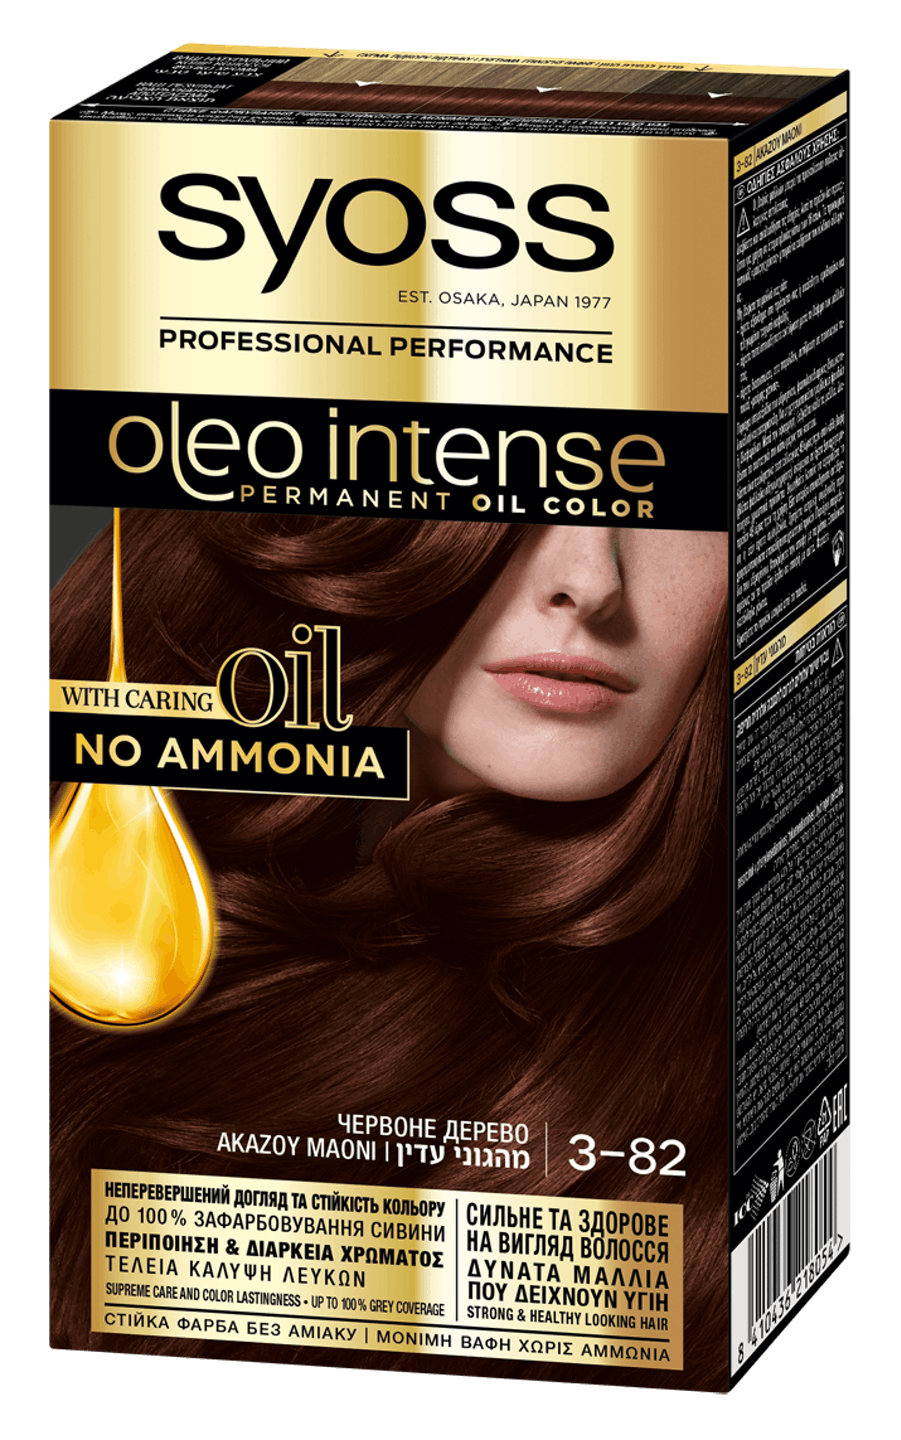 Syoss Oleo Intense Червоне Дерево 3-82 shot pack